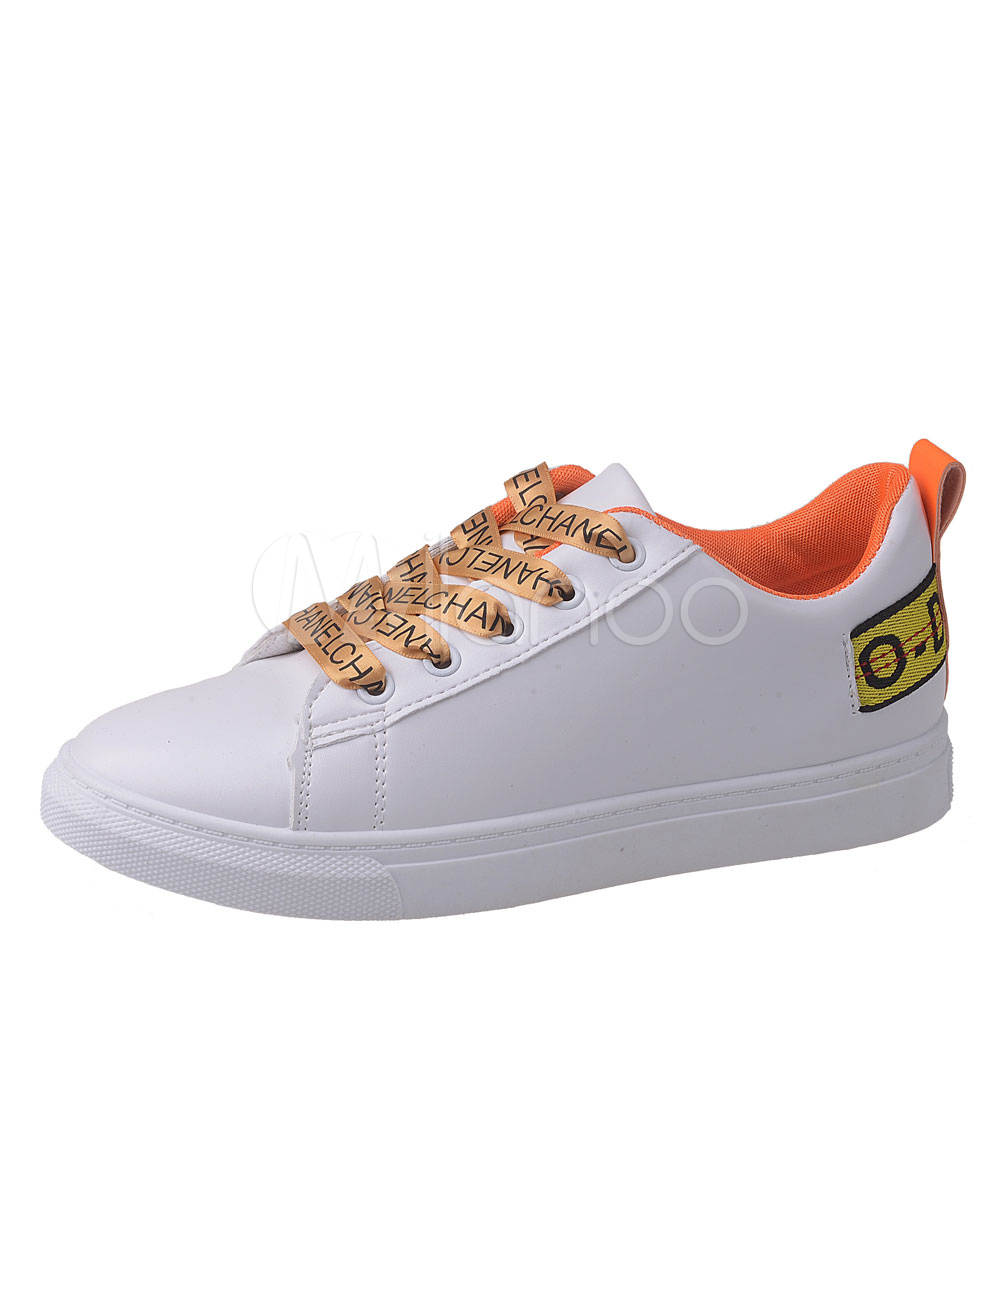 Women's Skate Shoes Orange Round Toe Lace Up Sneakers